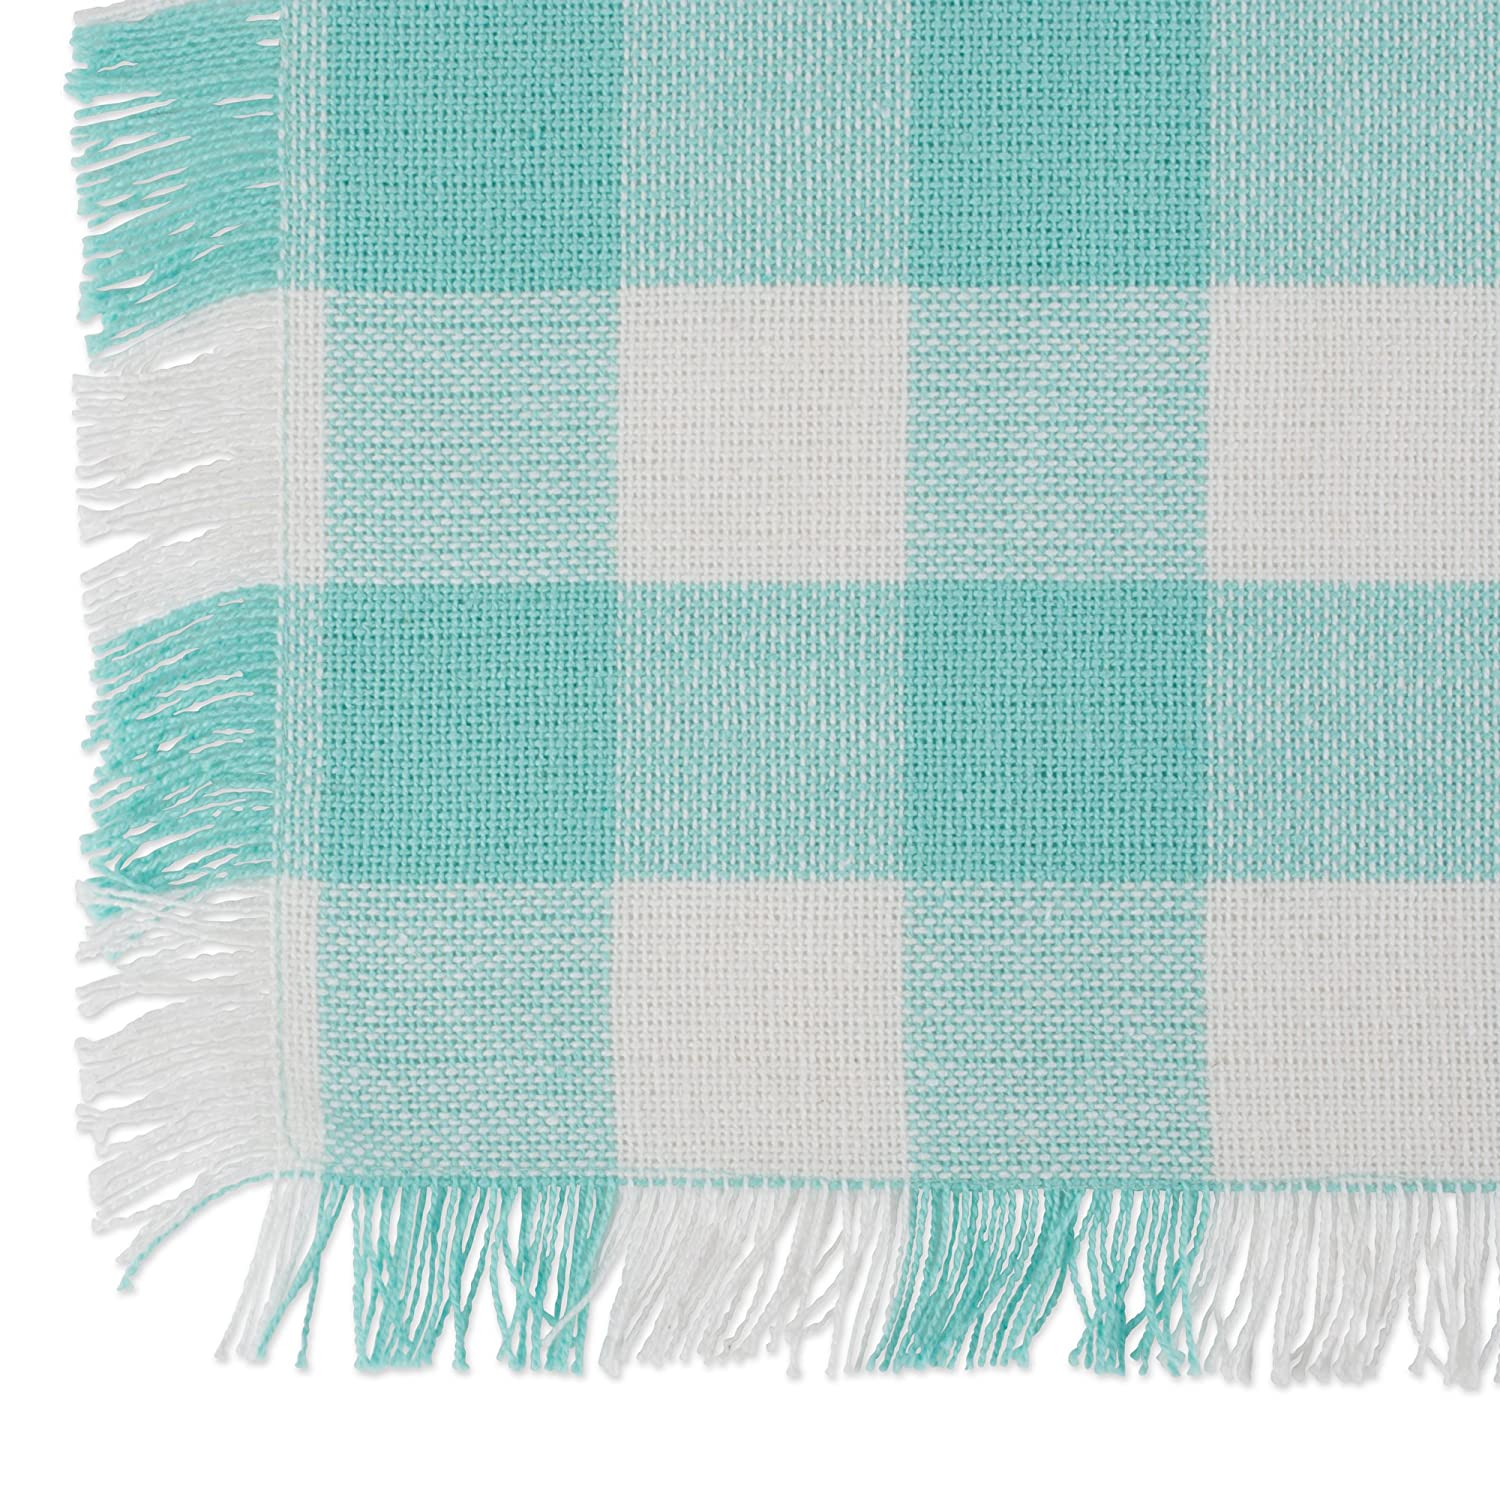 DII Cotton Woven Heavyweight Table Runner with Decorative Fringe for Spring Outdoor Parties 14x72 /& Everyday Use Summer Aqua Solid CAMZ10434 14x72 Aqua Solid /& Everyday Use Family Dinners